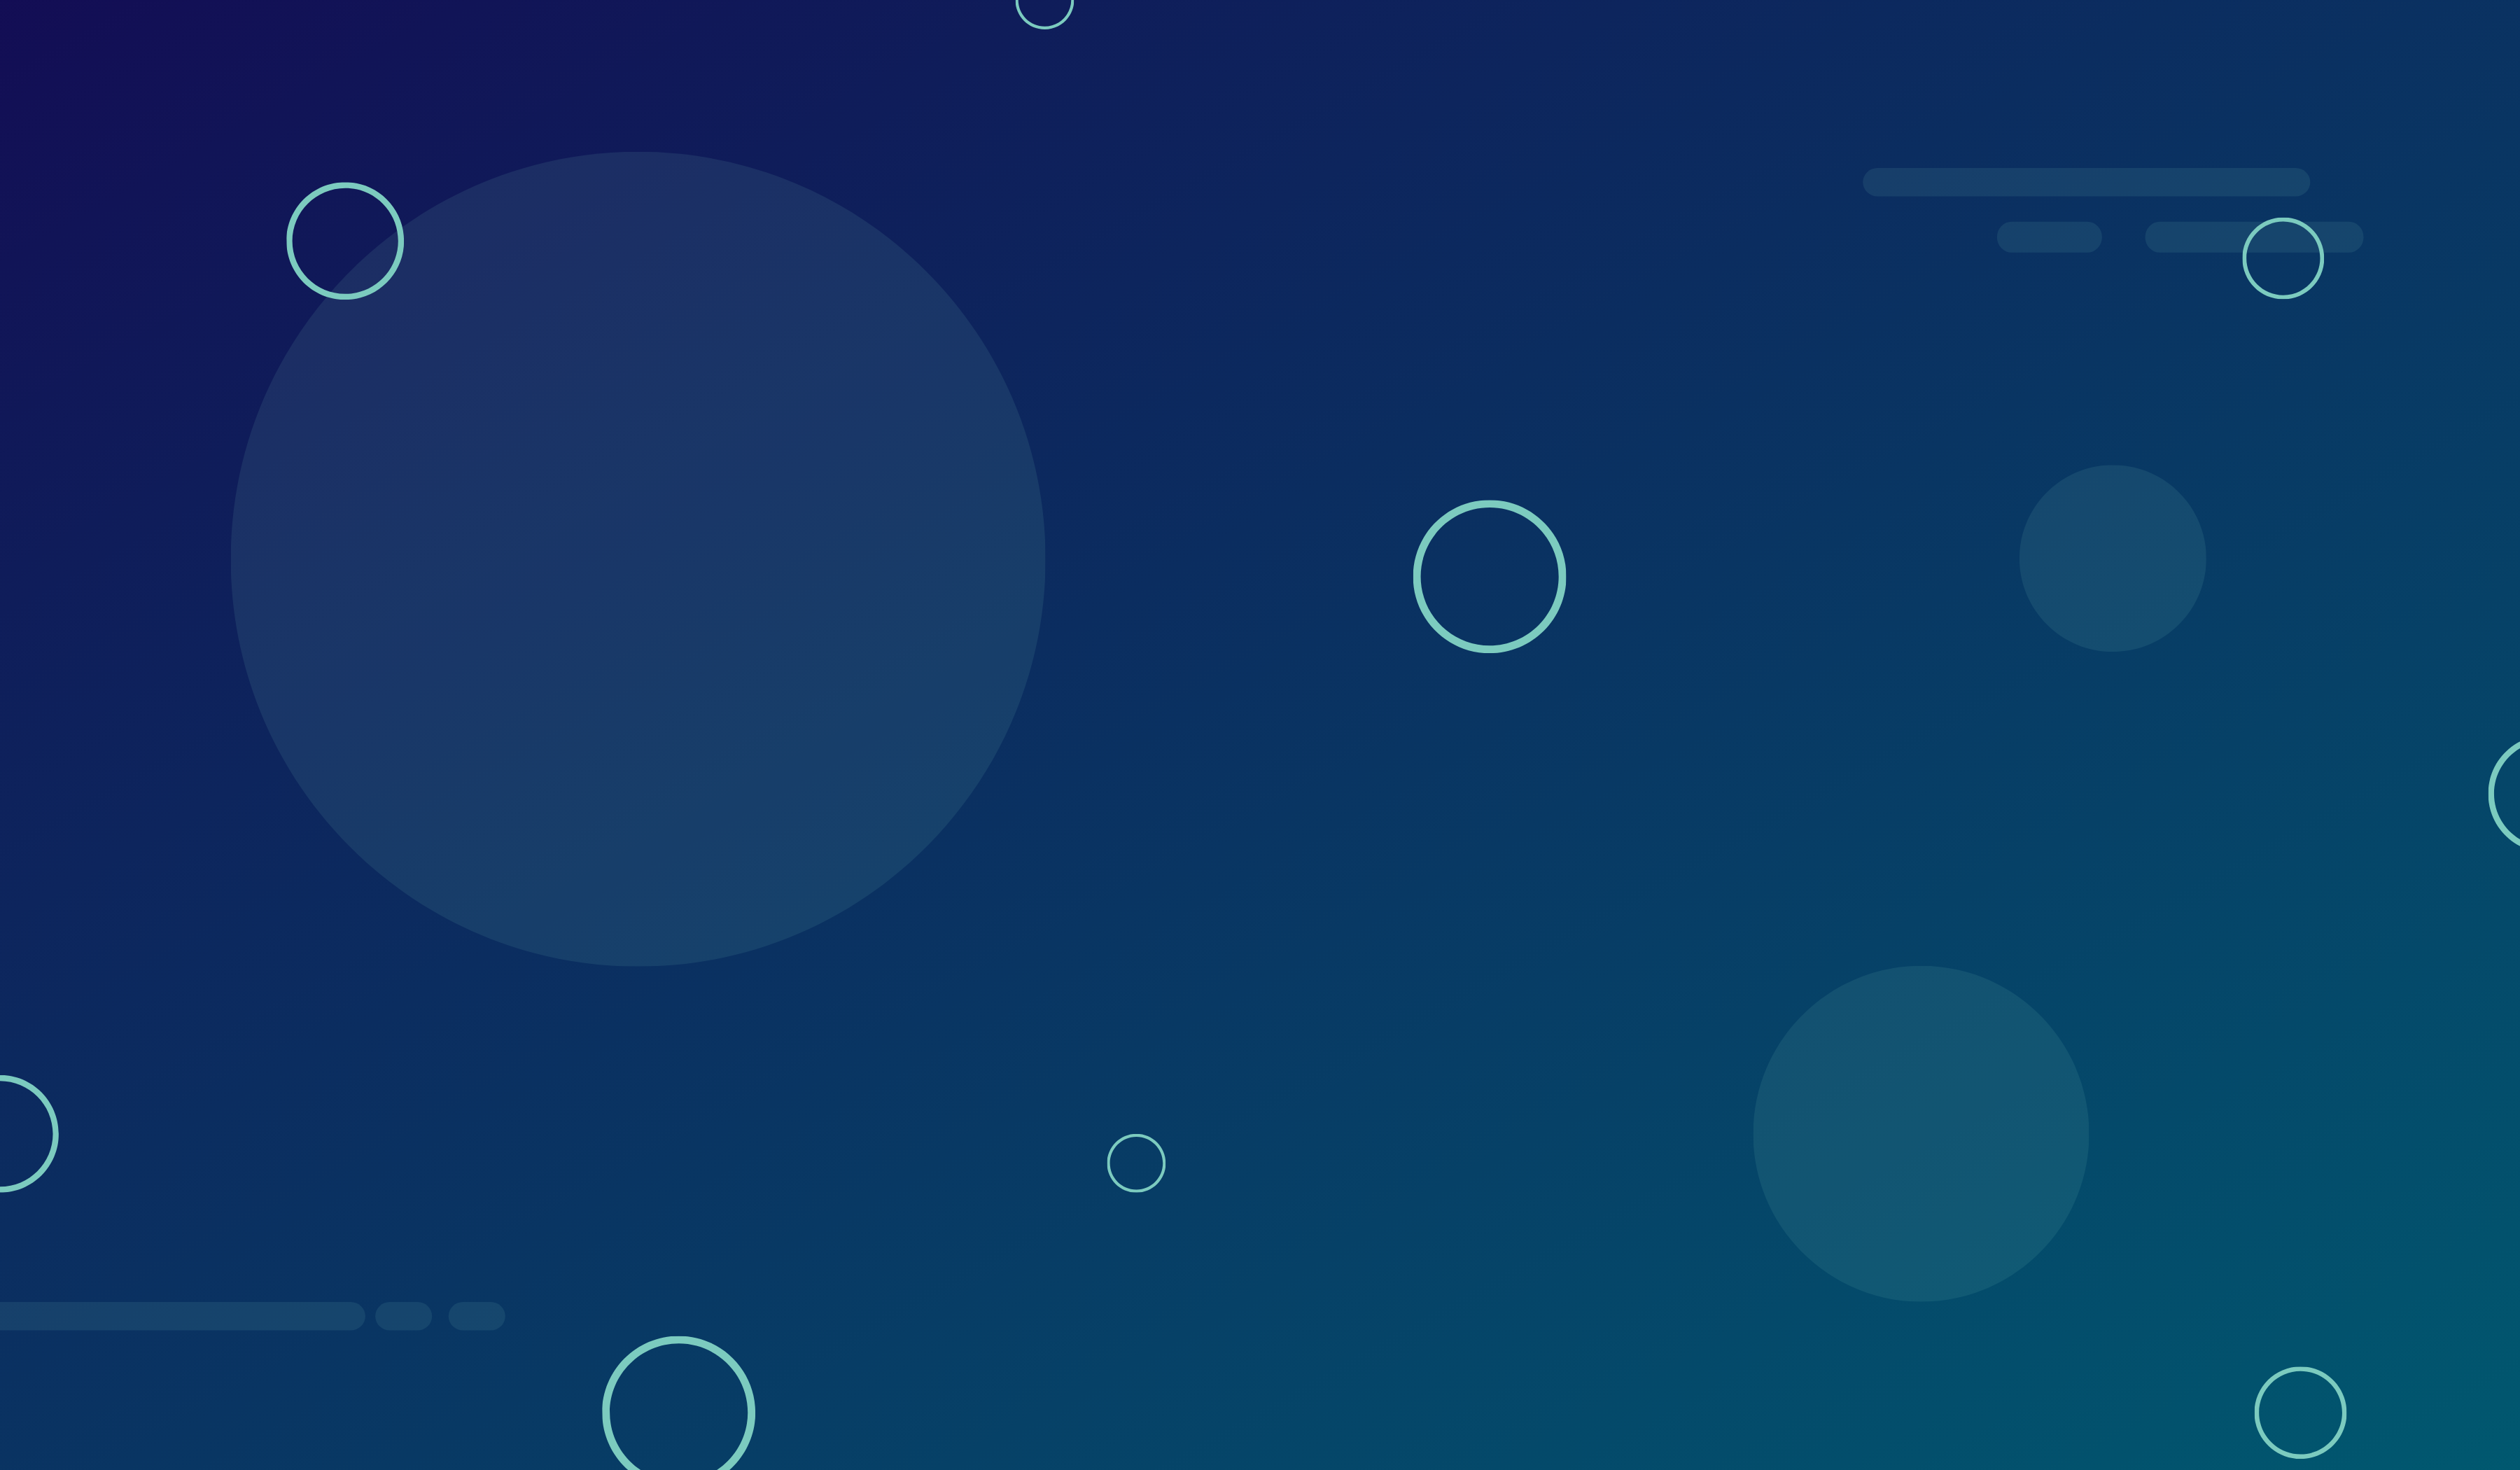 5 Insights From B2B Blog Strategies That Convert. Image contents: Dark blue gradient background with circles.